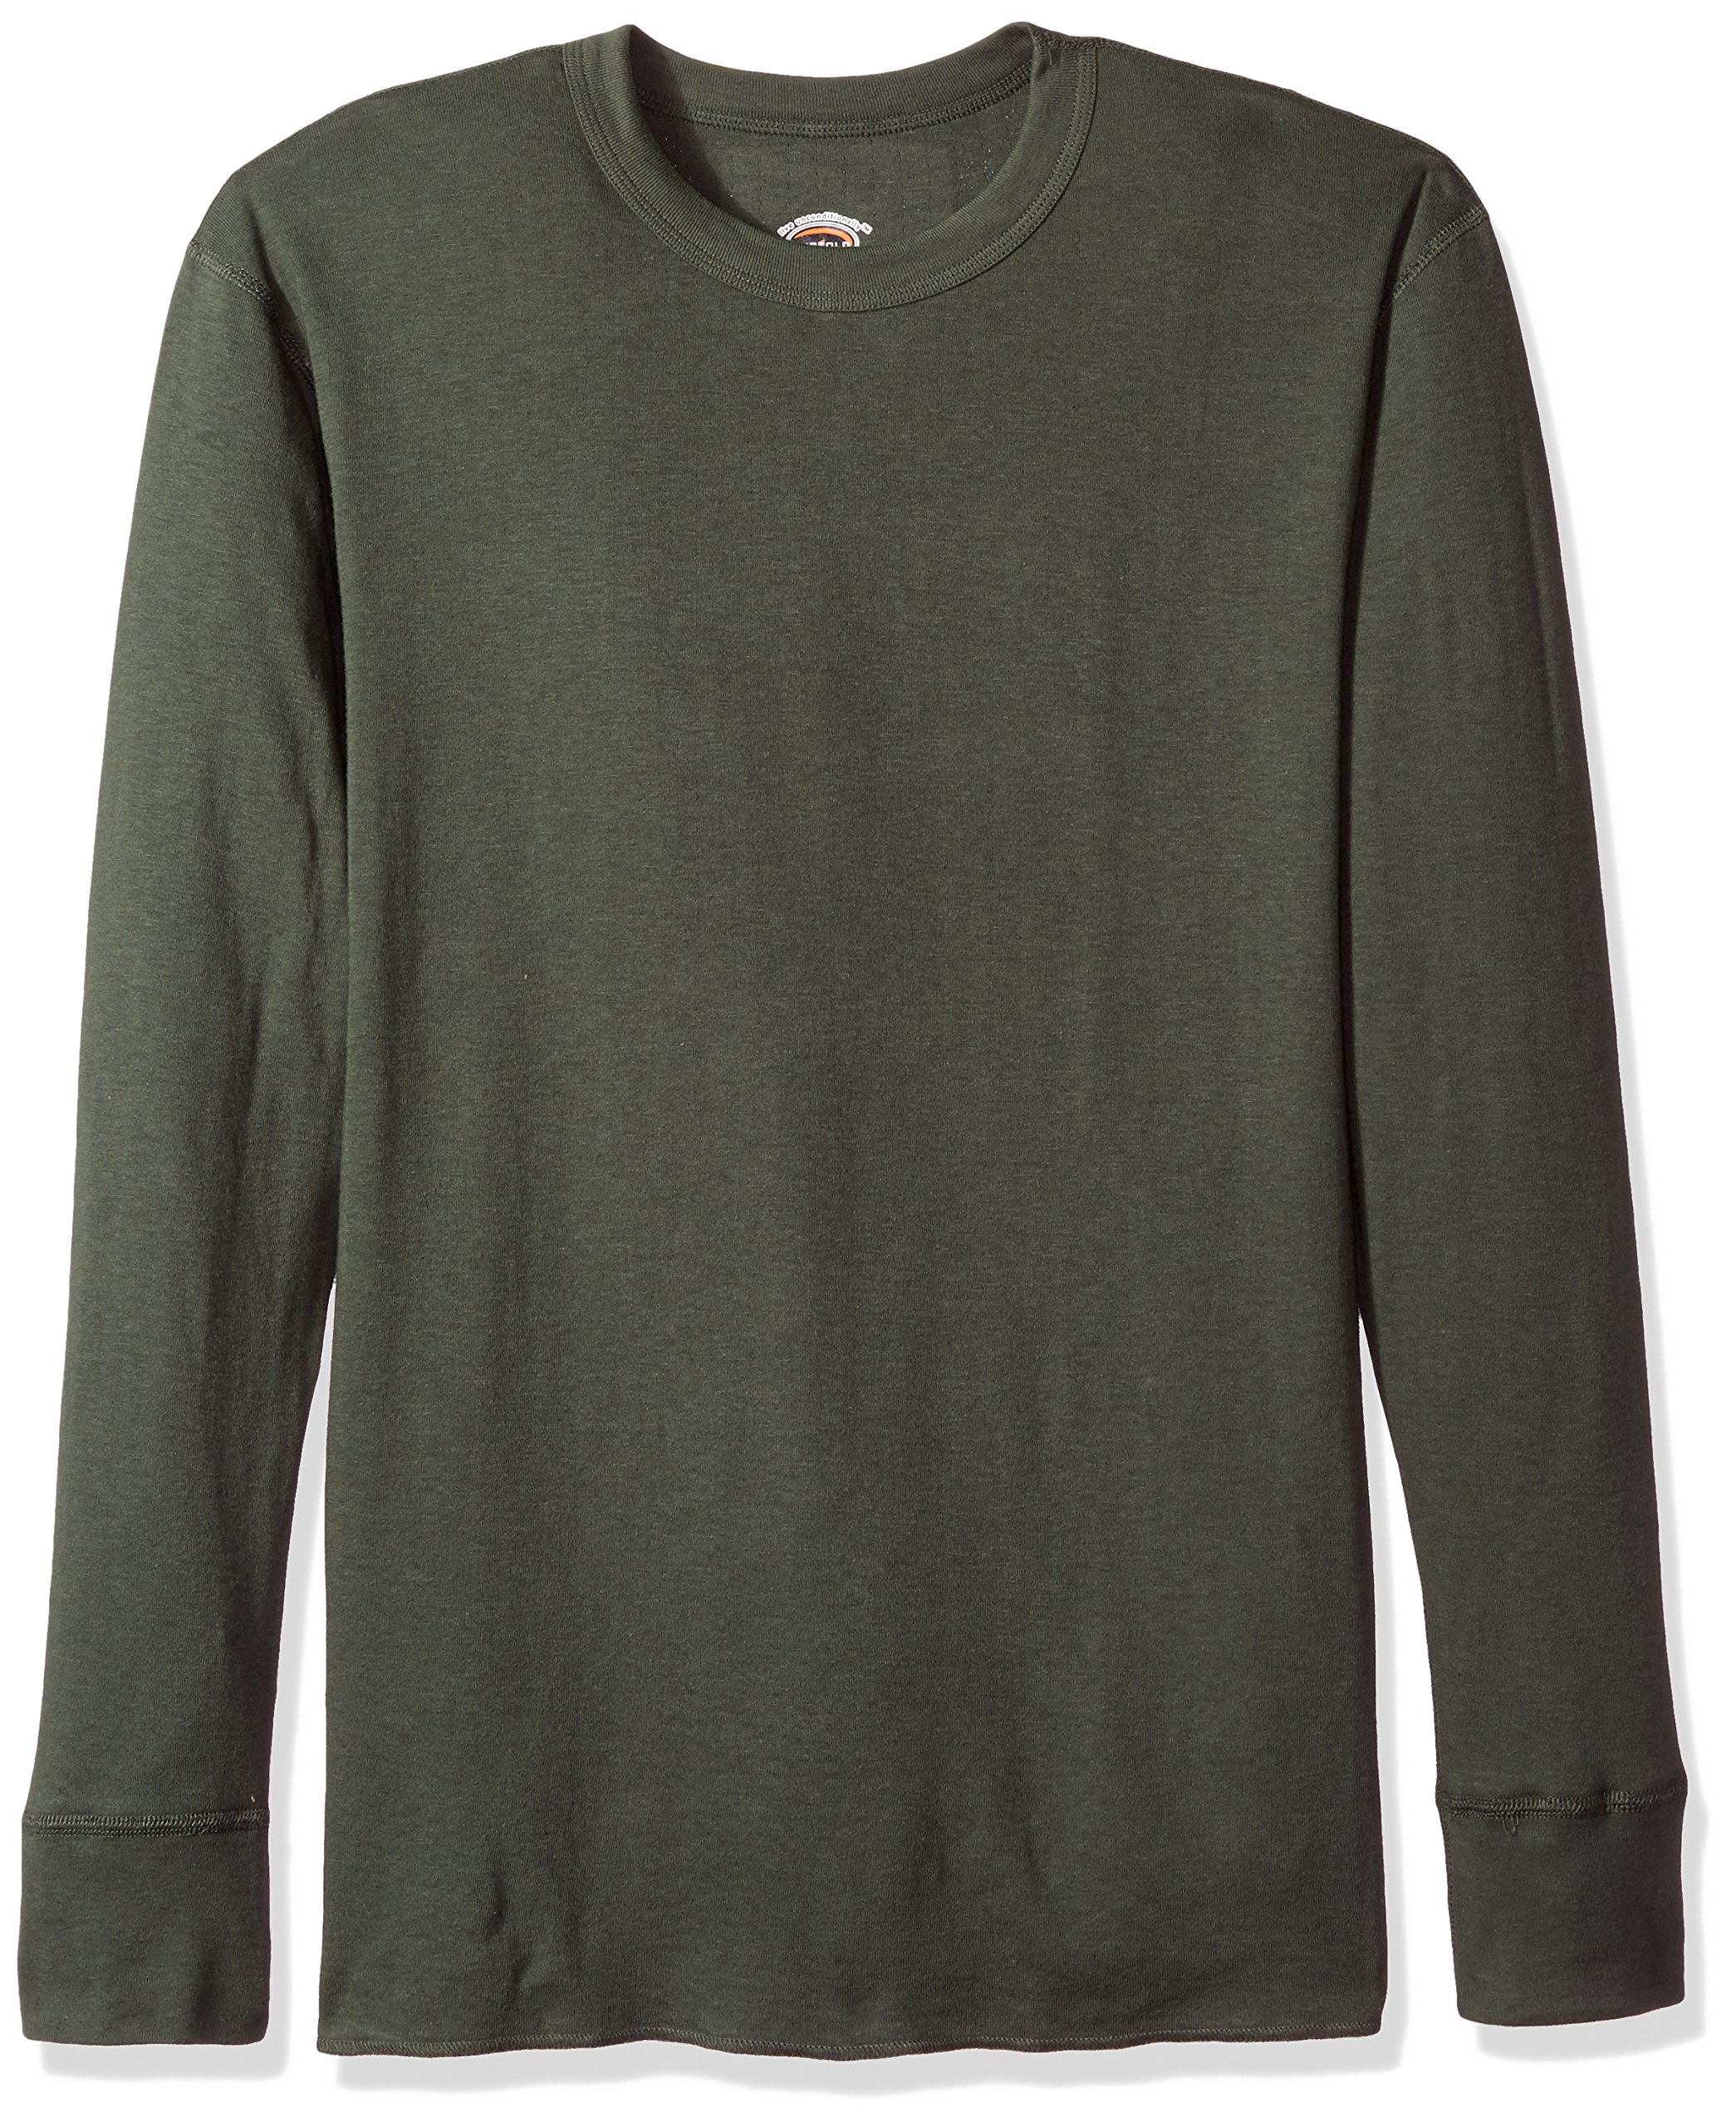 Duofold Men's Mid Weight Wicking Crew Neck